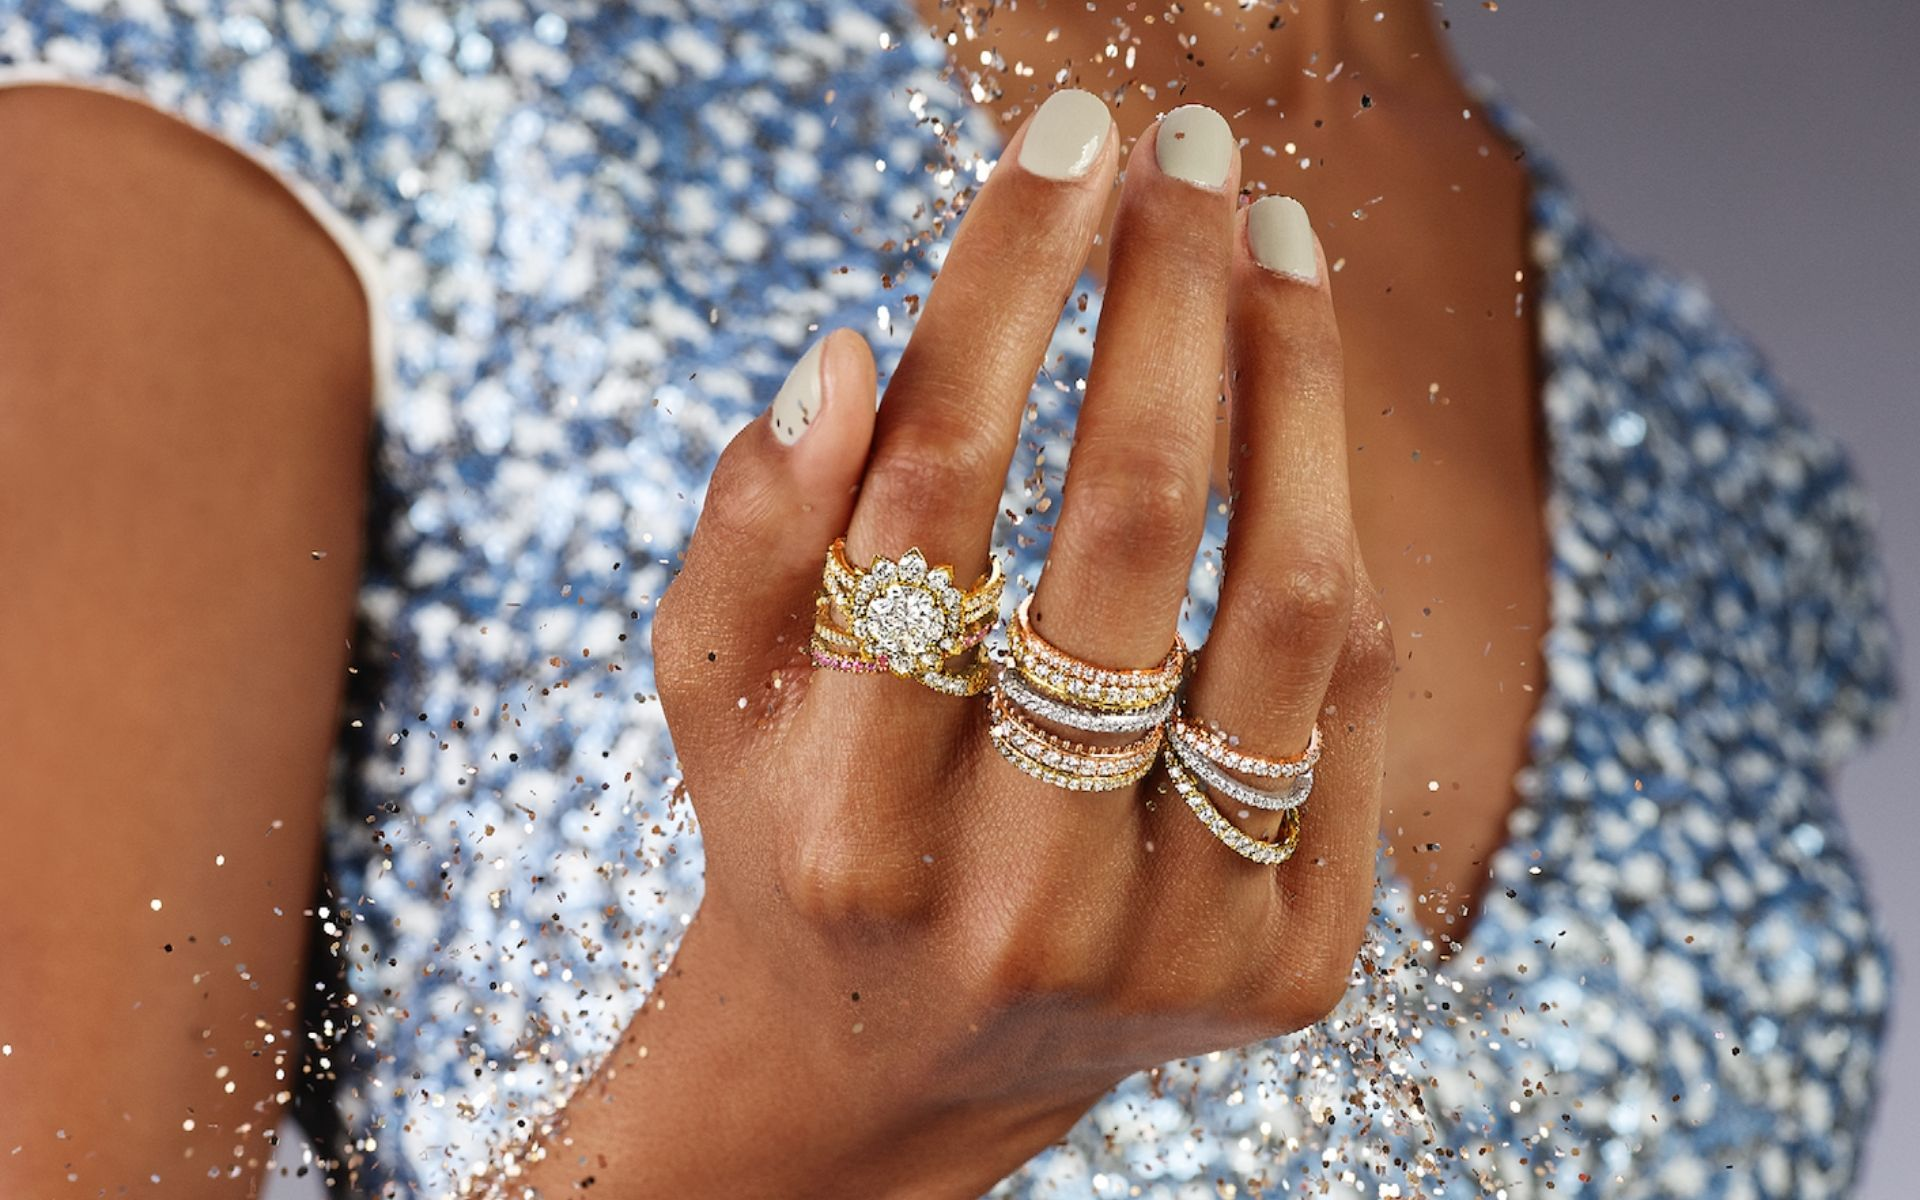 Wedding Dress Designer Hayley Paige Collaborates With Jeweller Hearts On Fire For A Collection Of Engagement Rings